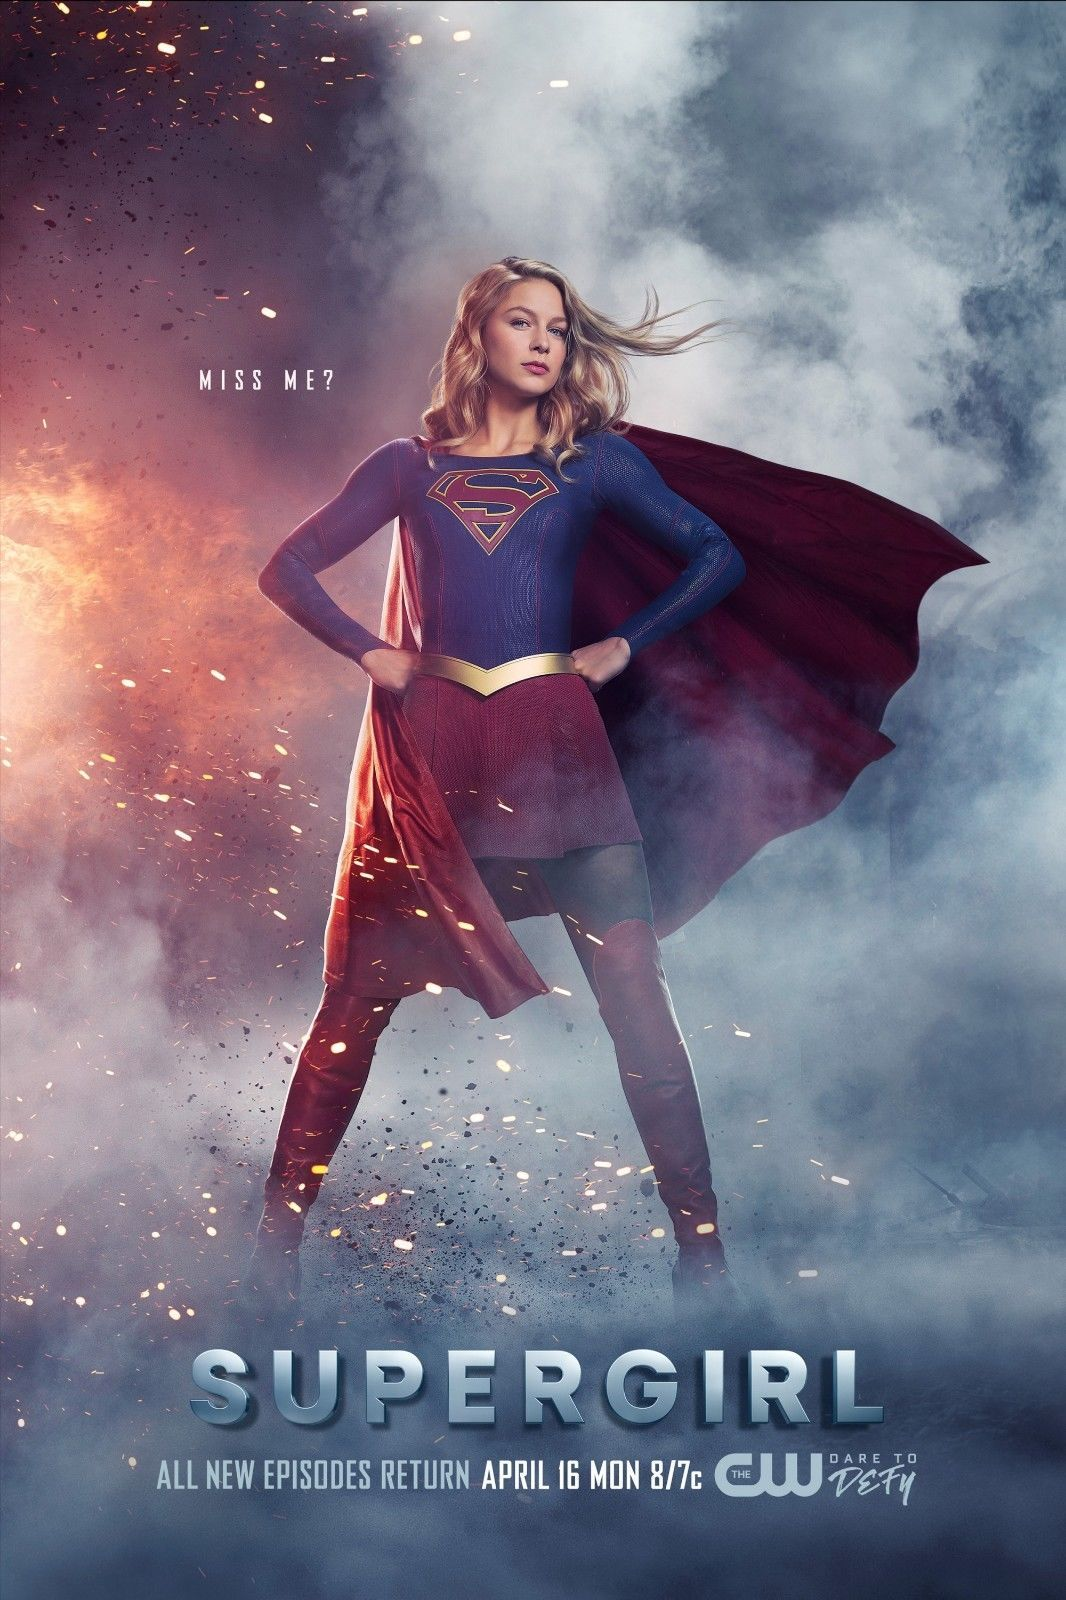 9 9 Supergirl Tv Series Poster Season 3 Melissa Benoist Print 13x20 24x36 32x48 Ebay Collectibles Supergirl Season Supergirl Tv Supergirl Superman